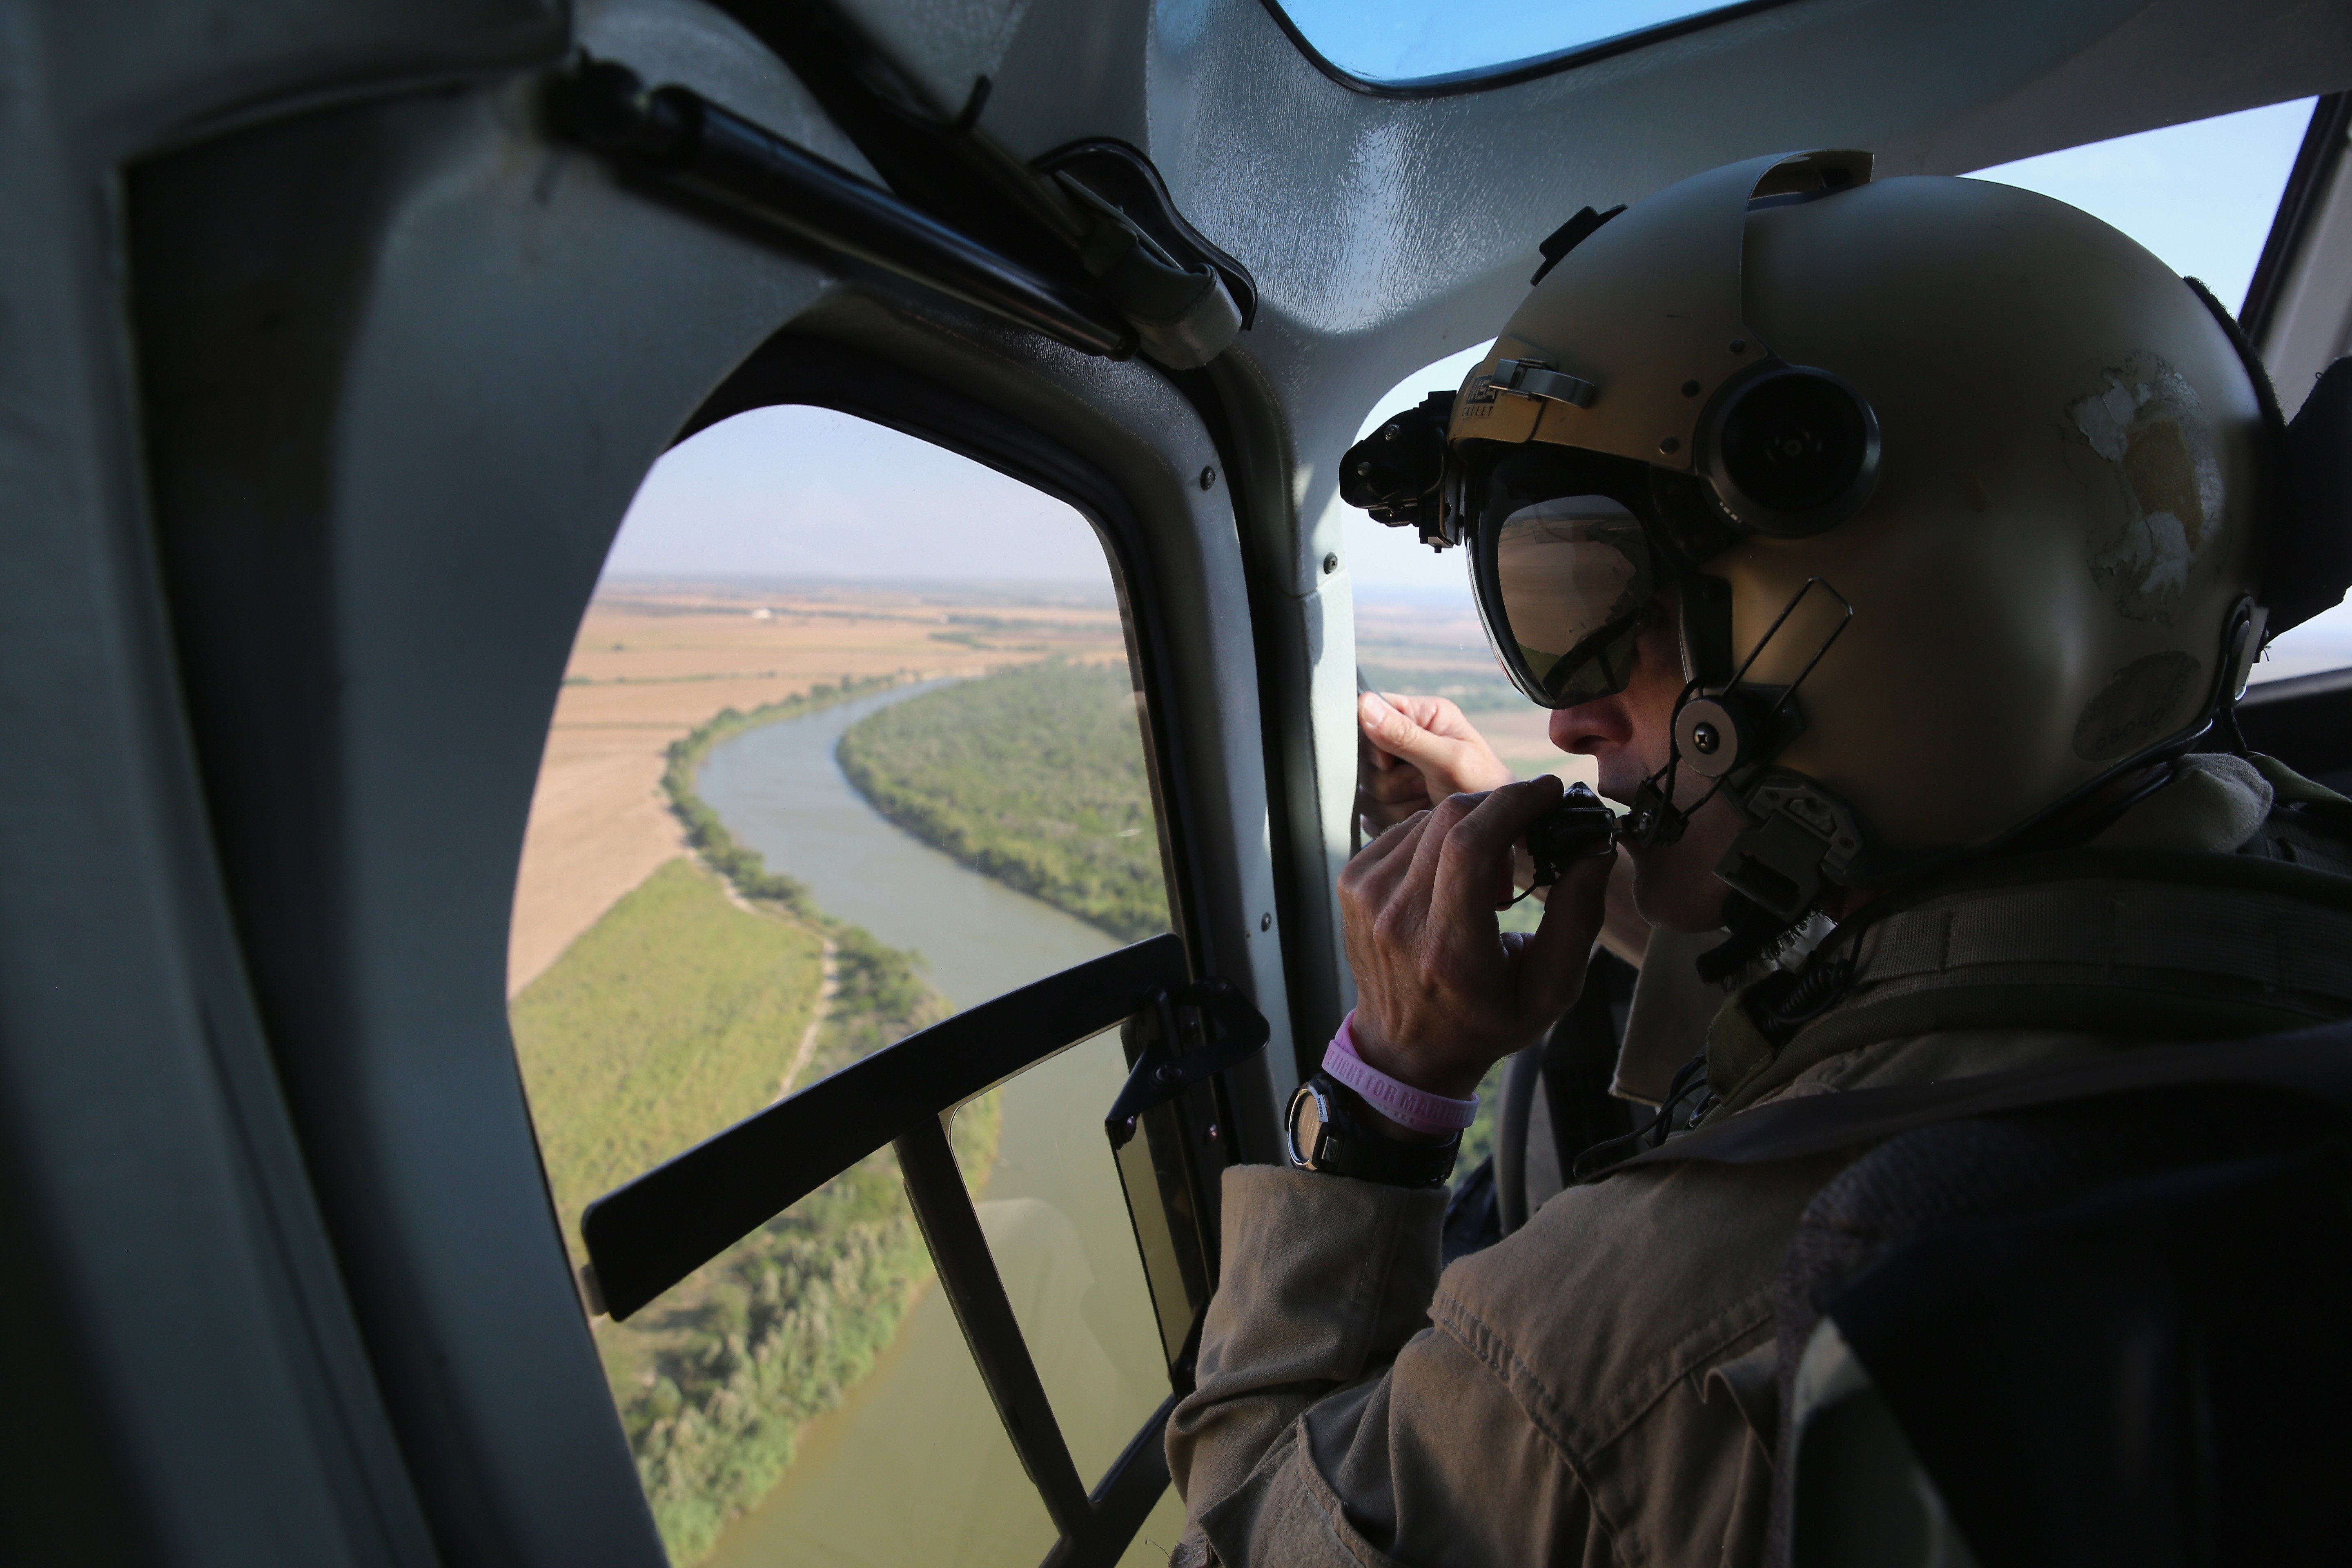 A U.S. Office of Air and Marine helicopter patrols over the Rio Grande at the U.S.-Mexico border in McAllen, Texas on July 21, 2014.